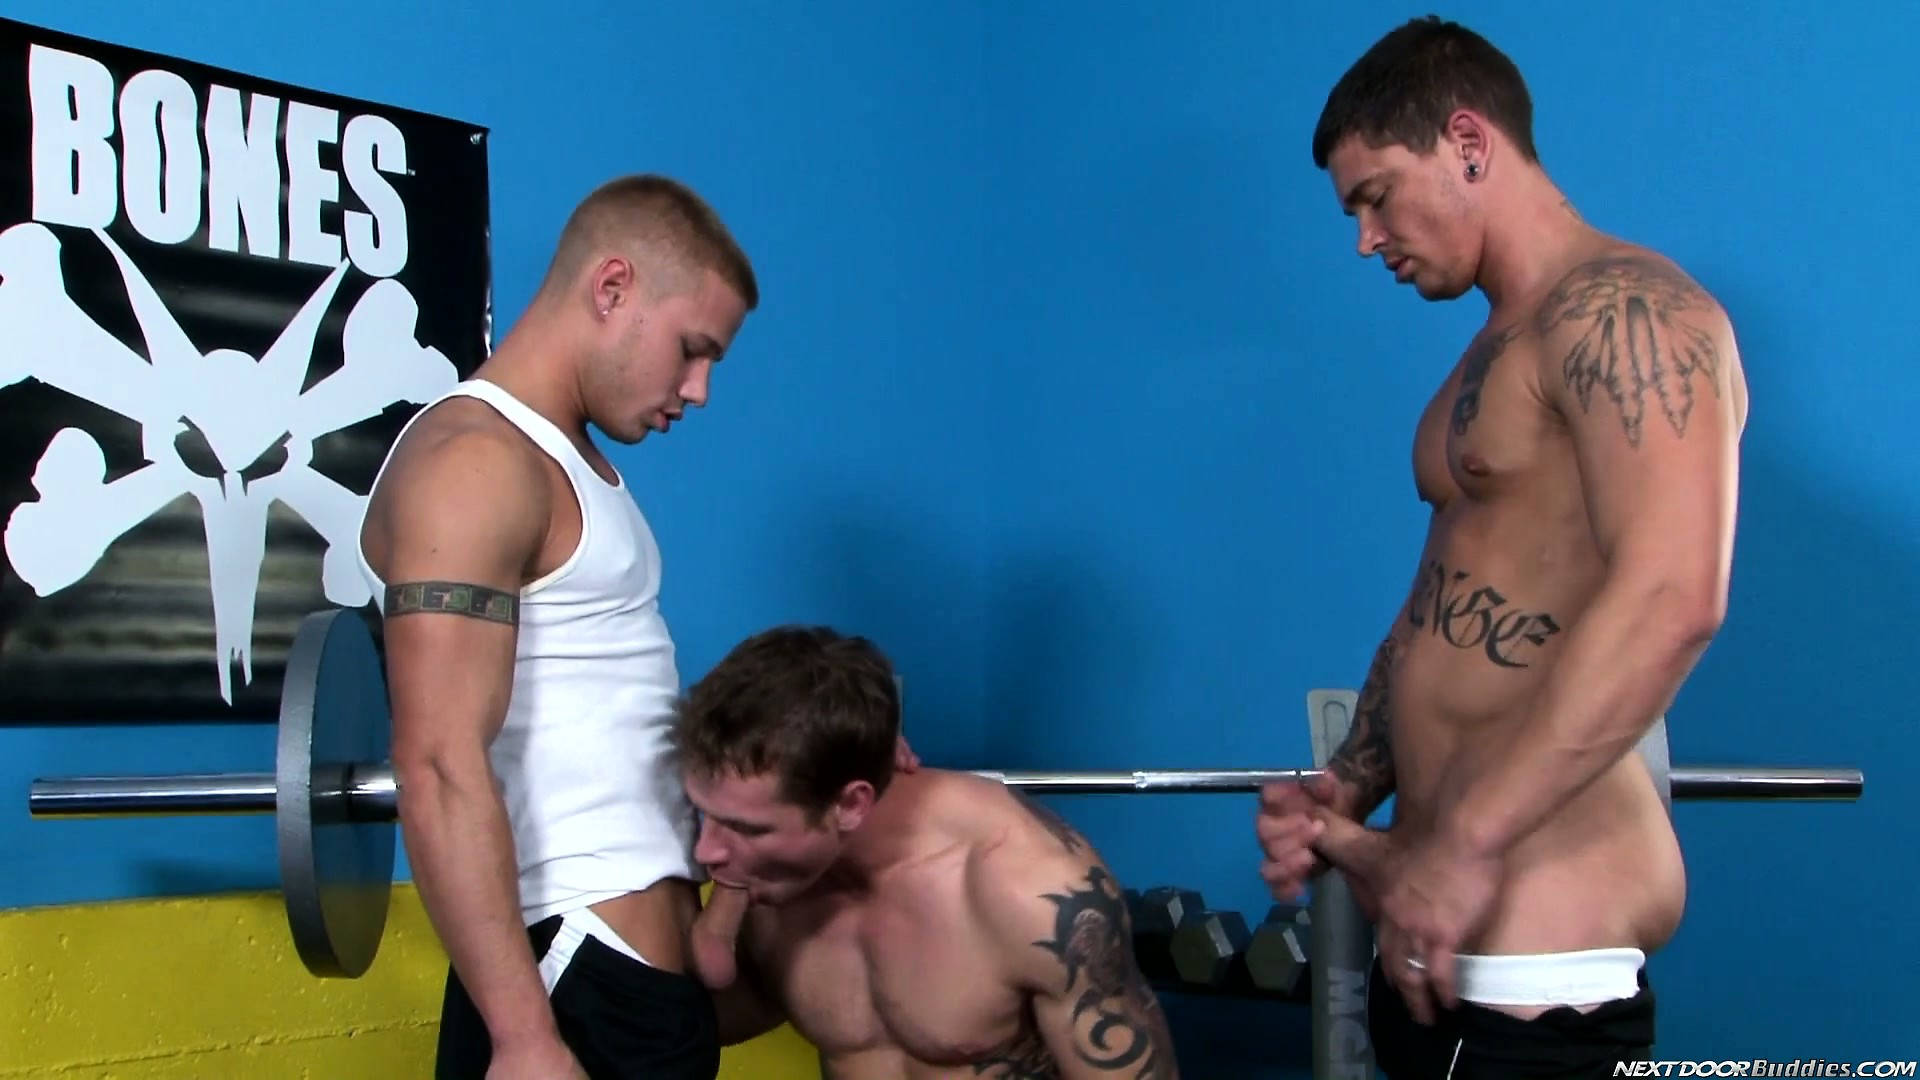 Porno Video of Working Out At The Gym Makes This Trio Of Buff Boys Horny, So Out Come The Cocks